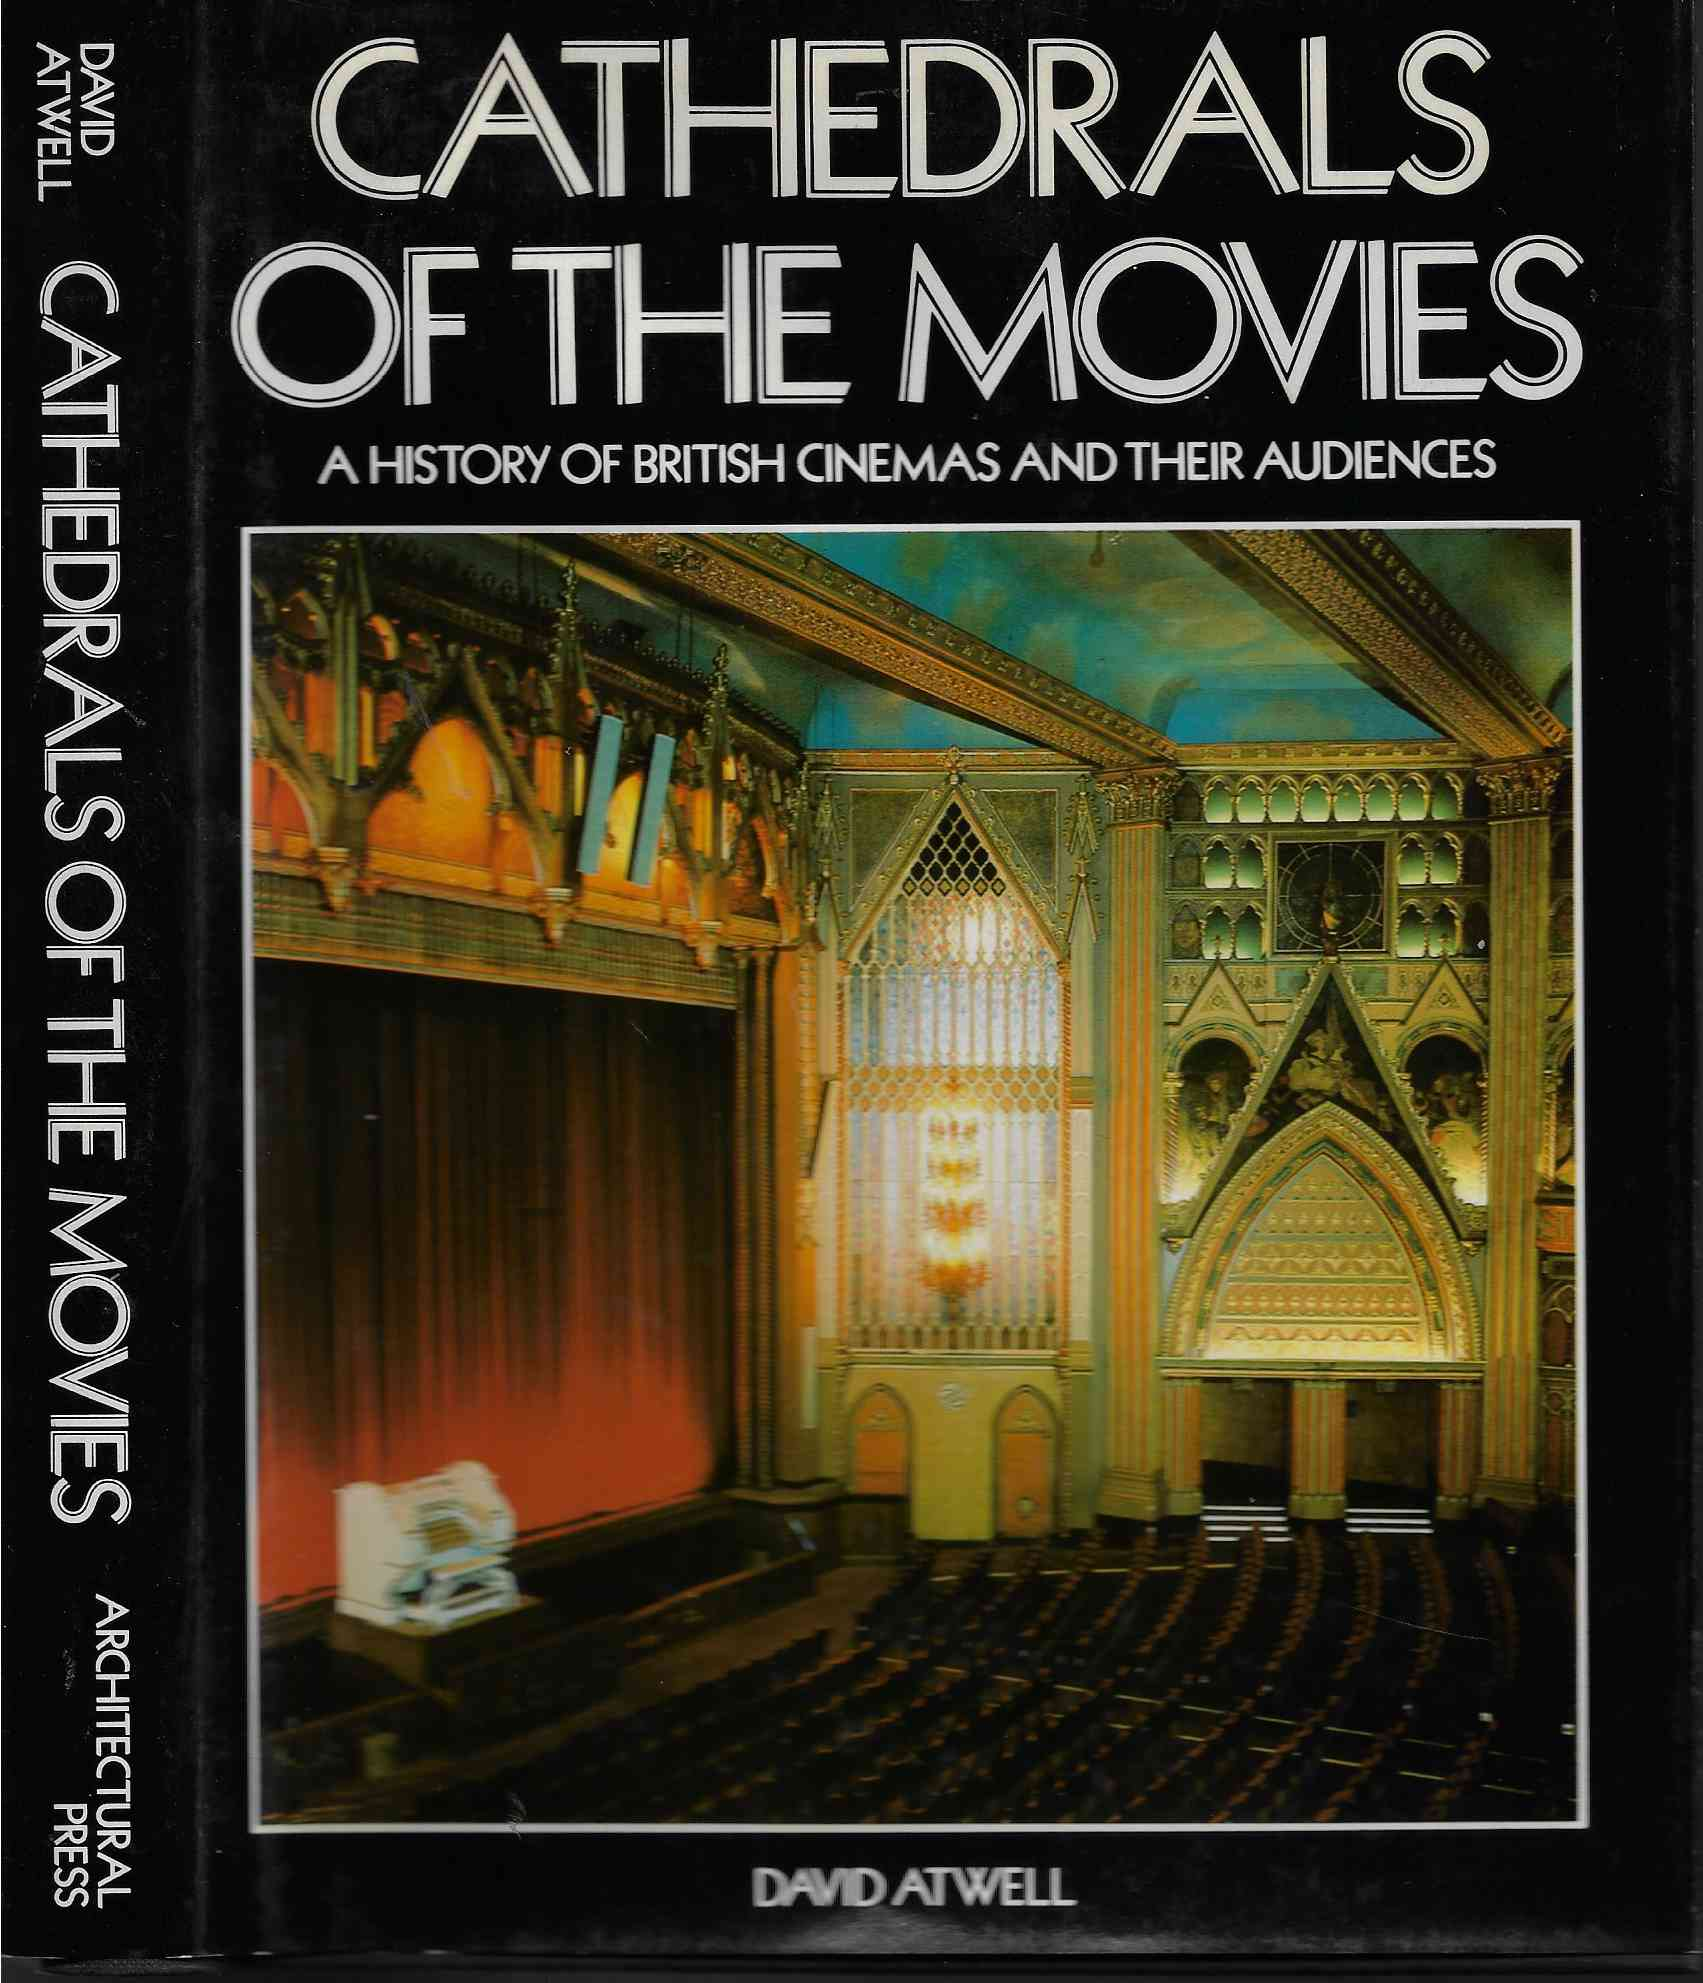 Image for Cathedrals of the Movies History of British Cinemas and Their Audiences